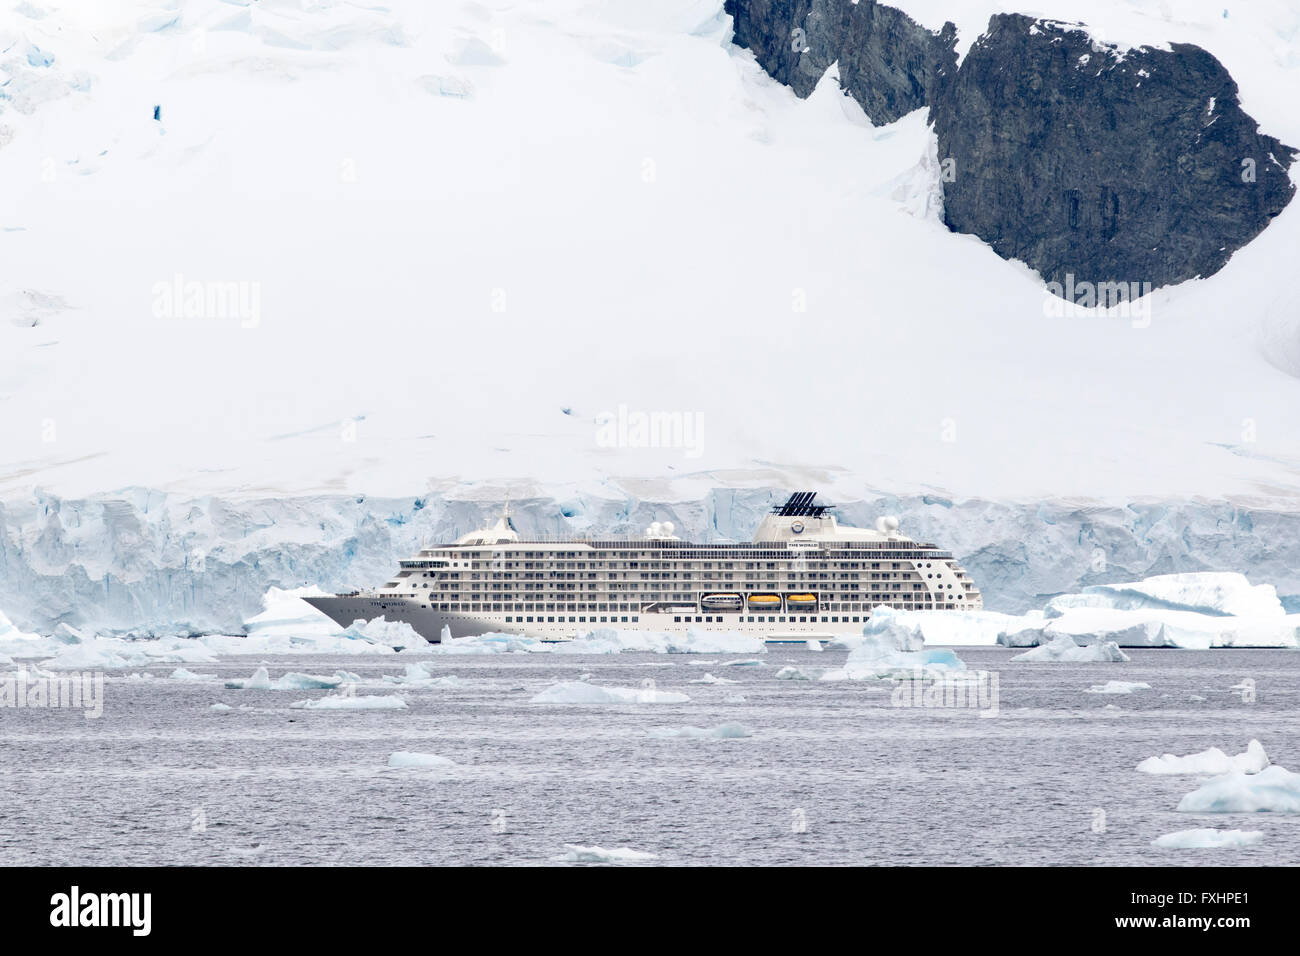 The World cruise ship in Antarctica with icebergs and glacier. - Stock Image